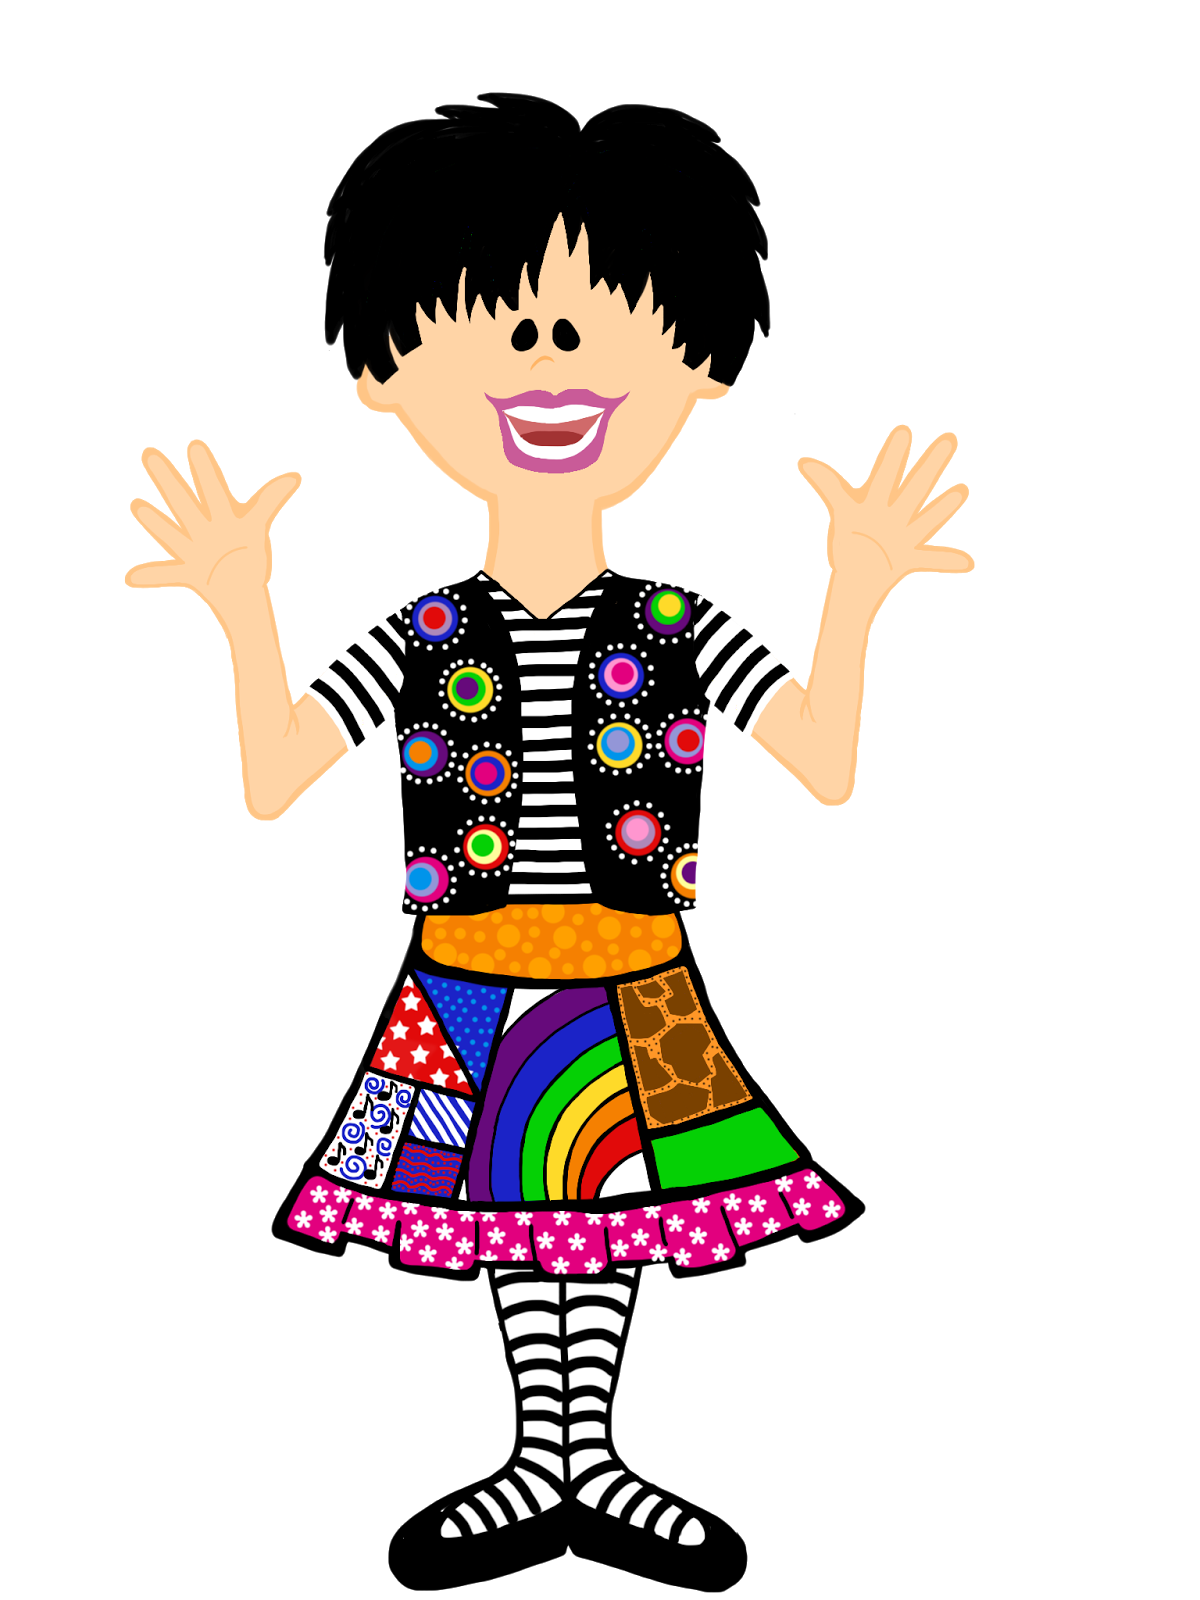 Wednesday clipart tacky day. School friends clip art